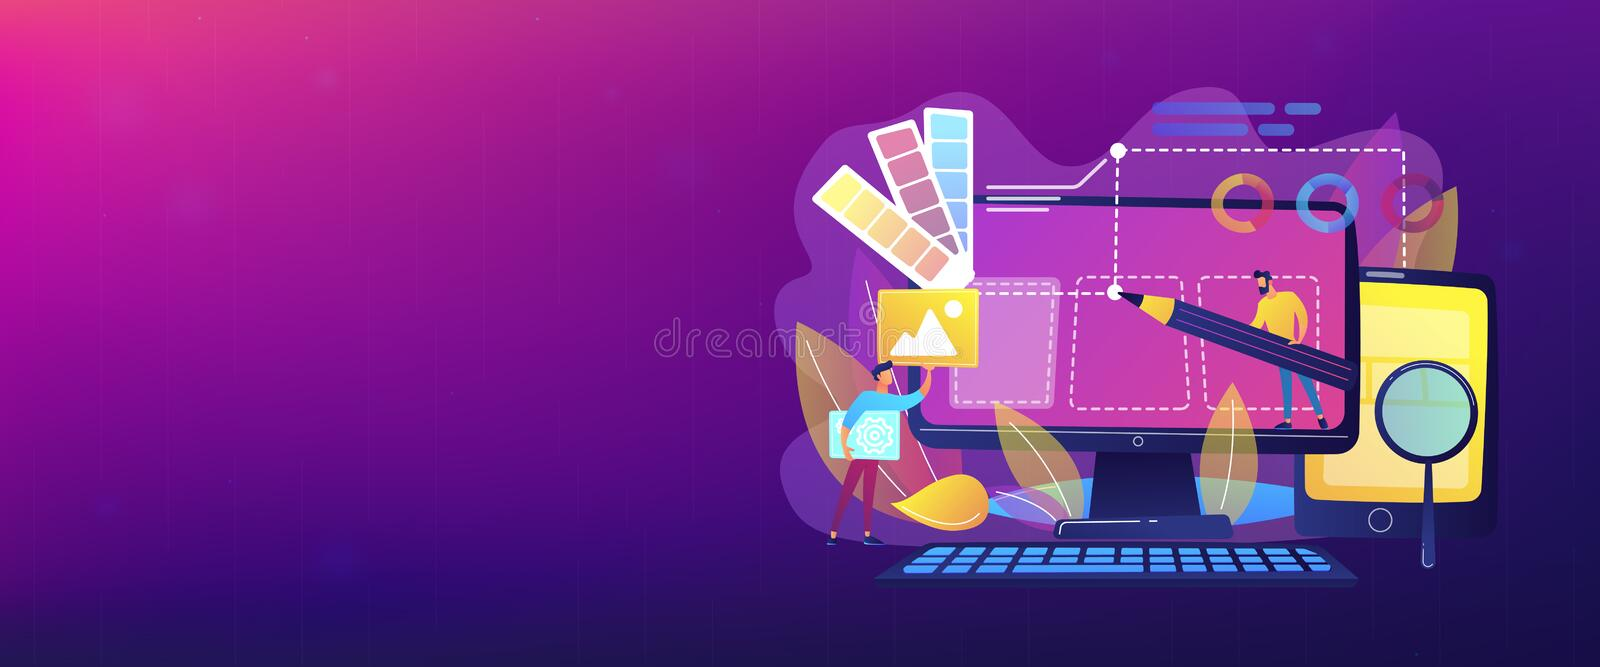 Web design development header or footer banner stock illustration